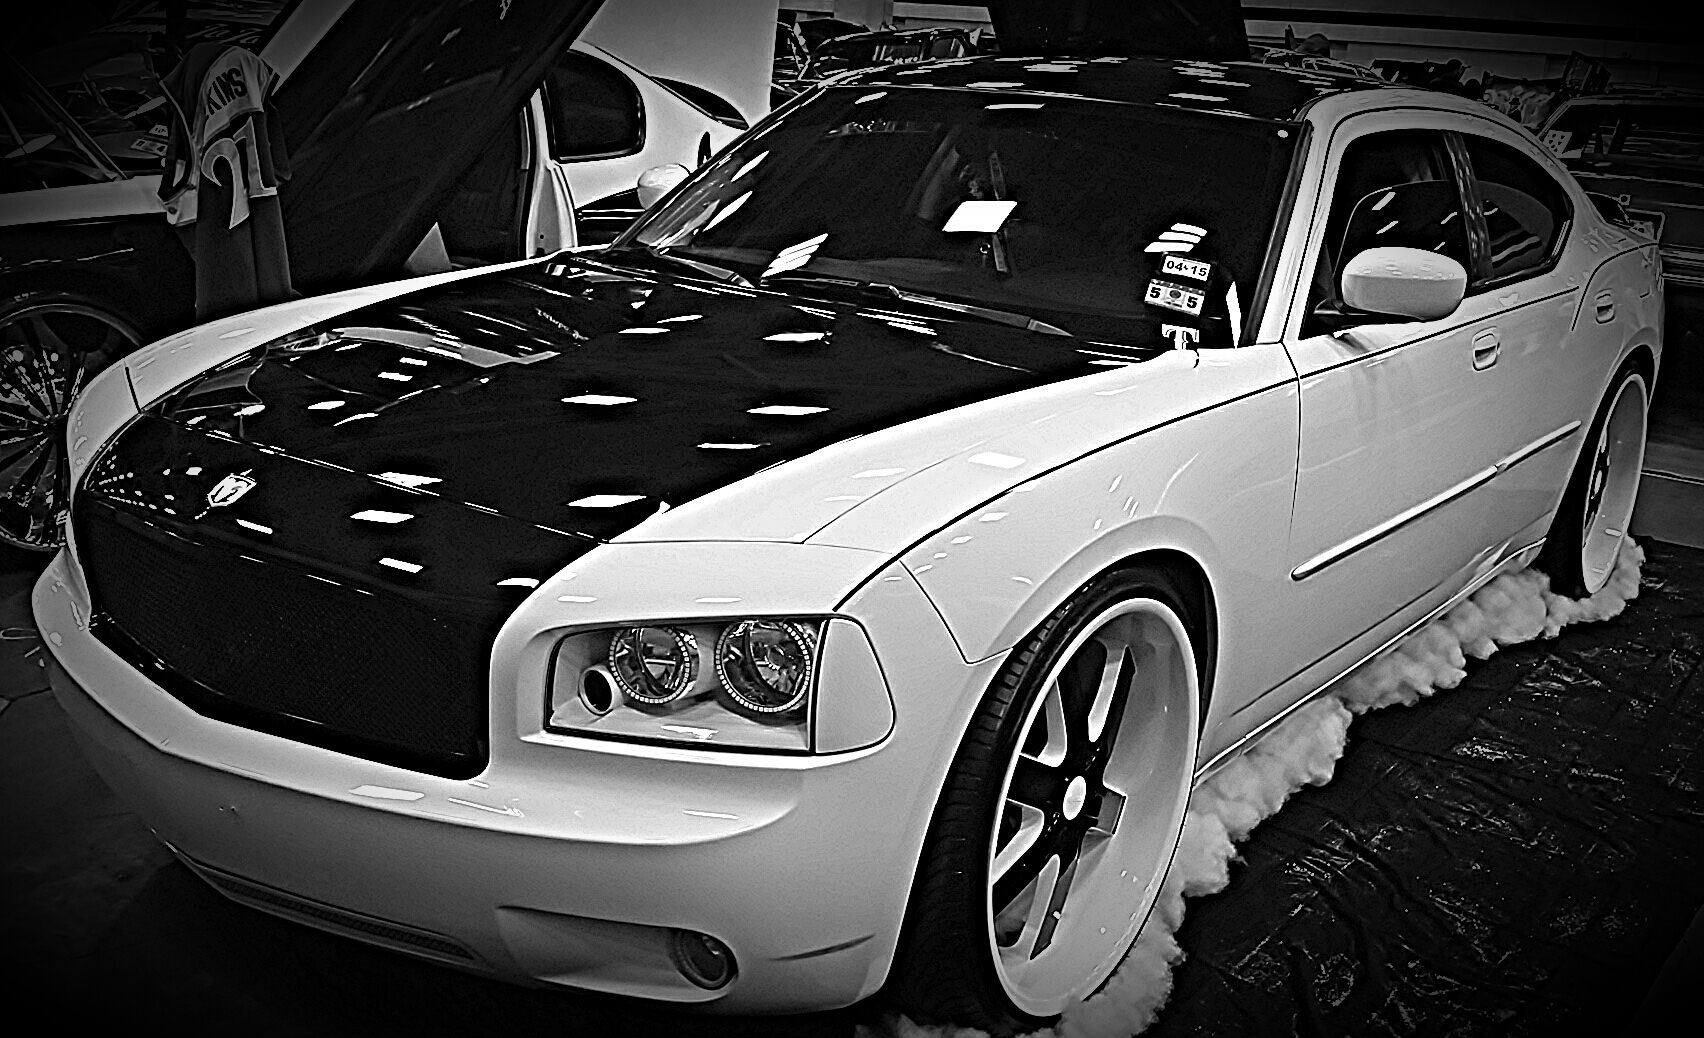 Dodge Challenger 24 Inch Rims >> luis Dodge Charger on 24's - Big Rims - Custom Wheels